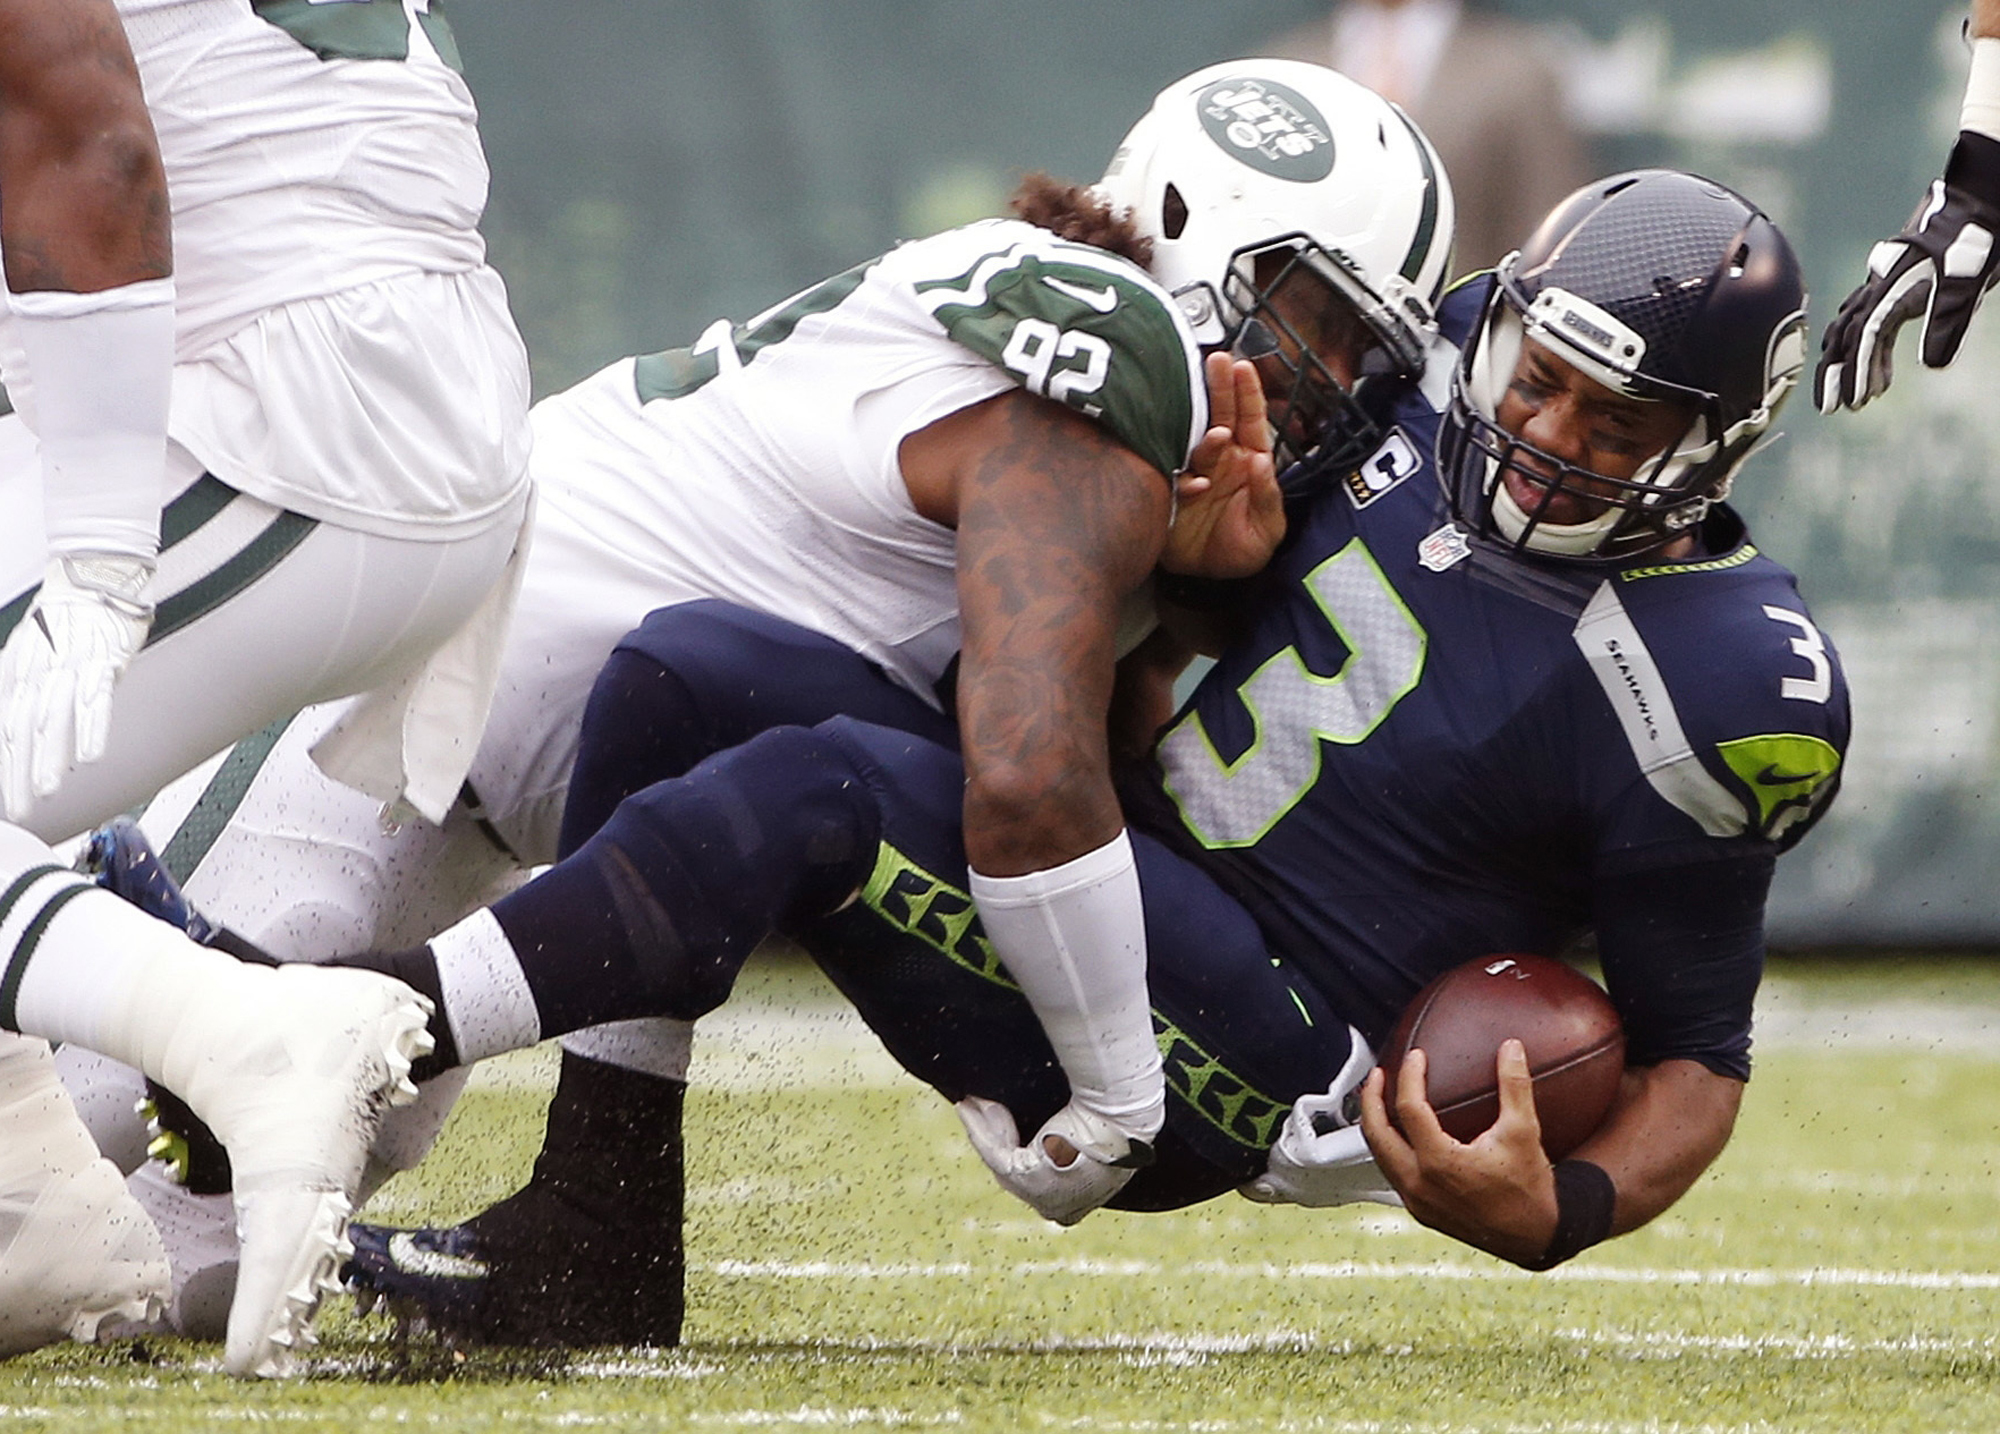 FILE - In this Oct. 2, 2016, file photo, New York Jets defensive tackle Leonard Williams (92) sacks Seattle Seahawks' Russell Wilson during  an NFL football game in East Rutherford, N.J. Williams leads the team with six sacks, 22 quarterback hits and two